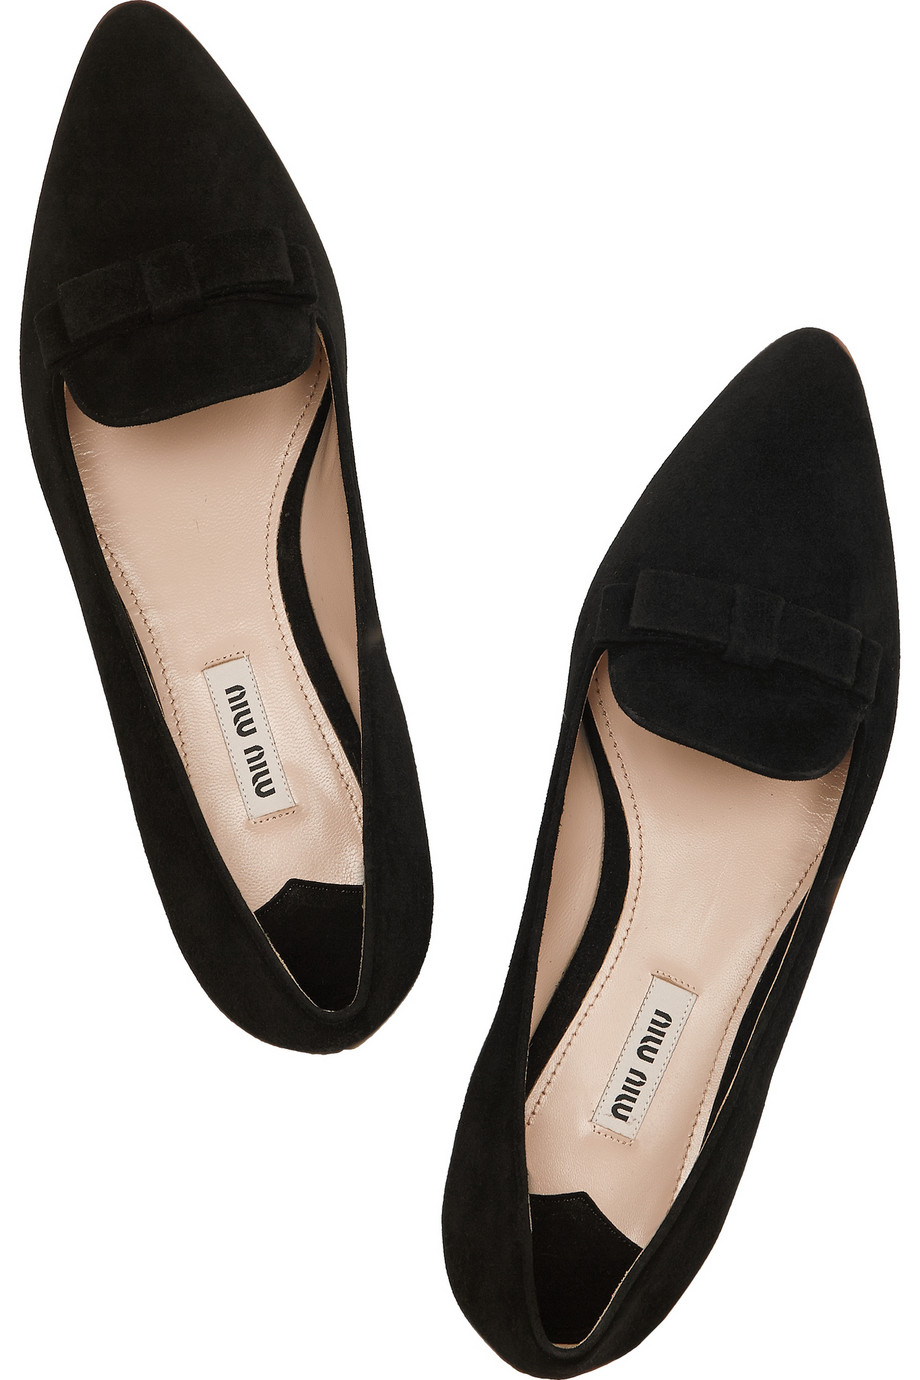 Lyst - Miu Miu Crystal-Embellished Suede Point-Toe Flats in Black f027fabc24